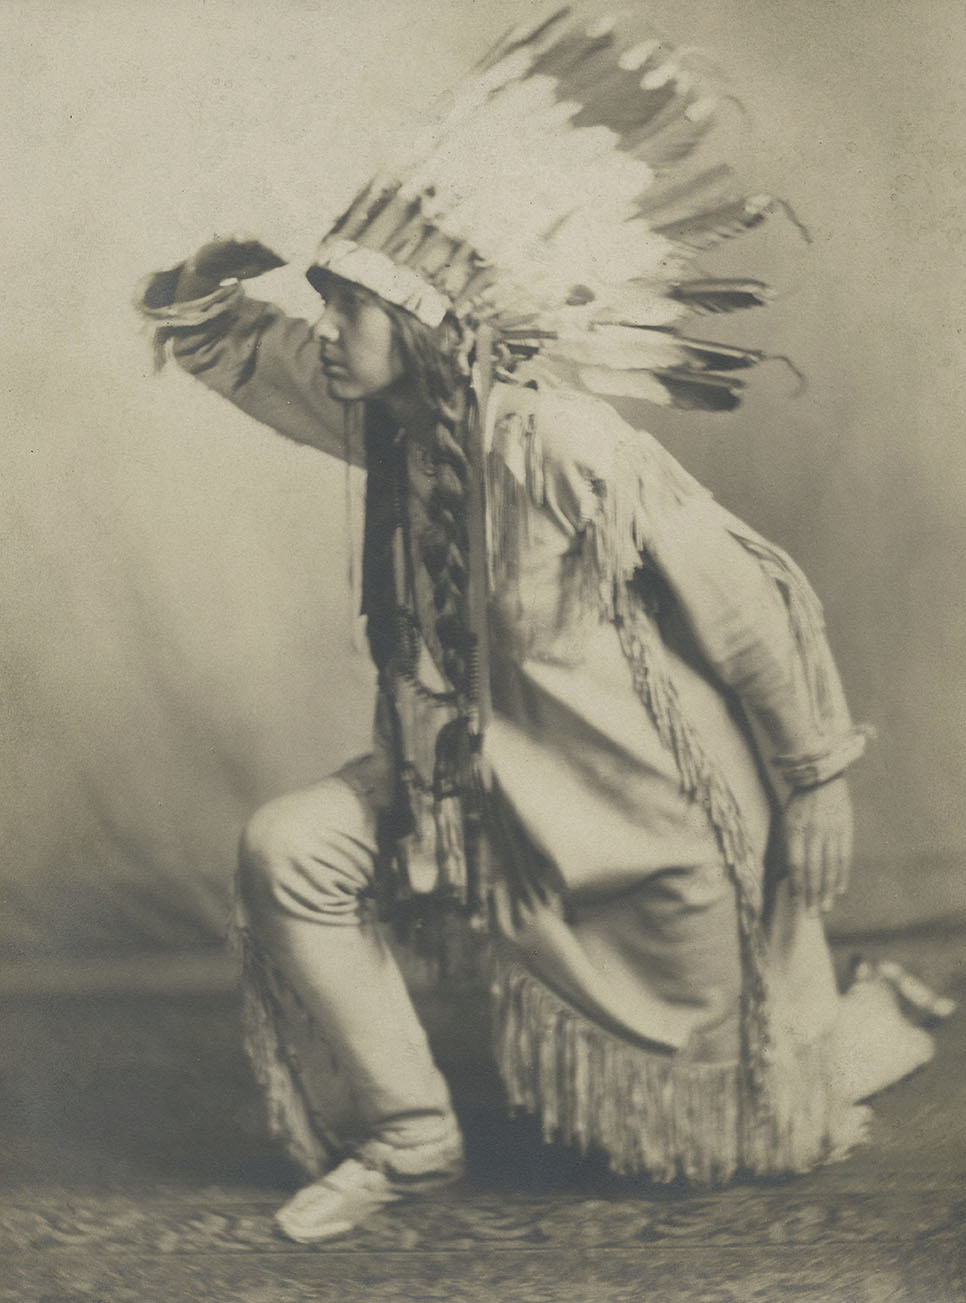 Te Ata posing in a Native American headdress.